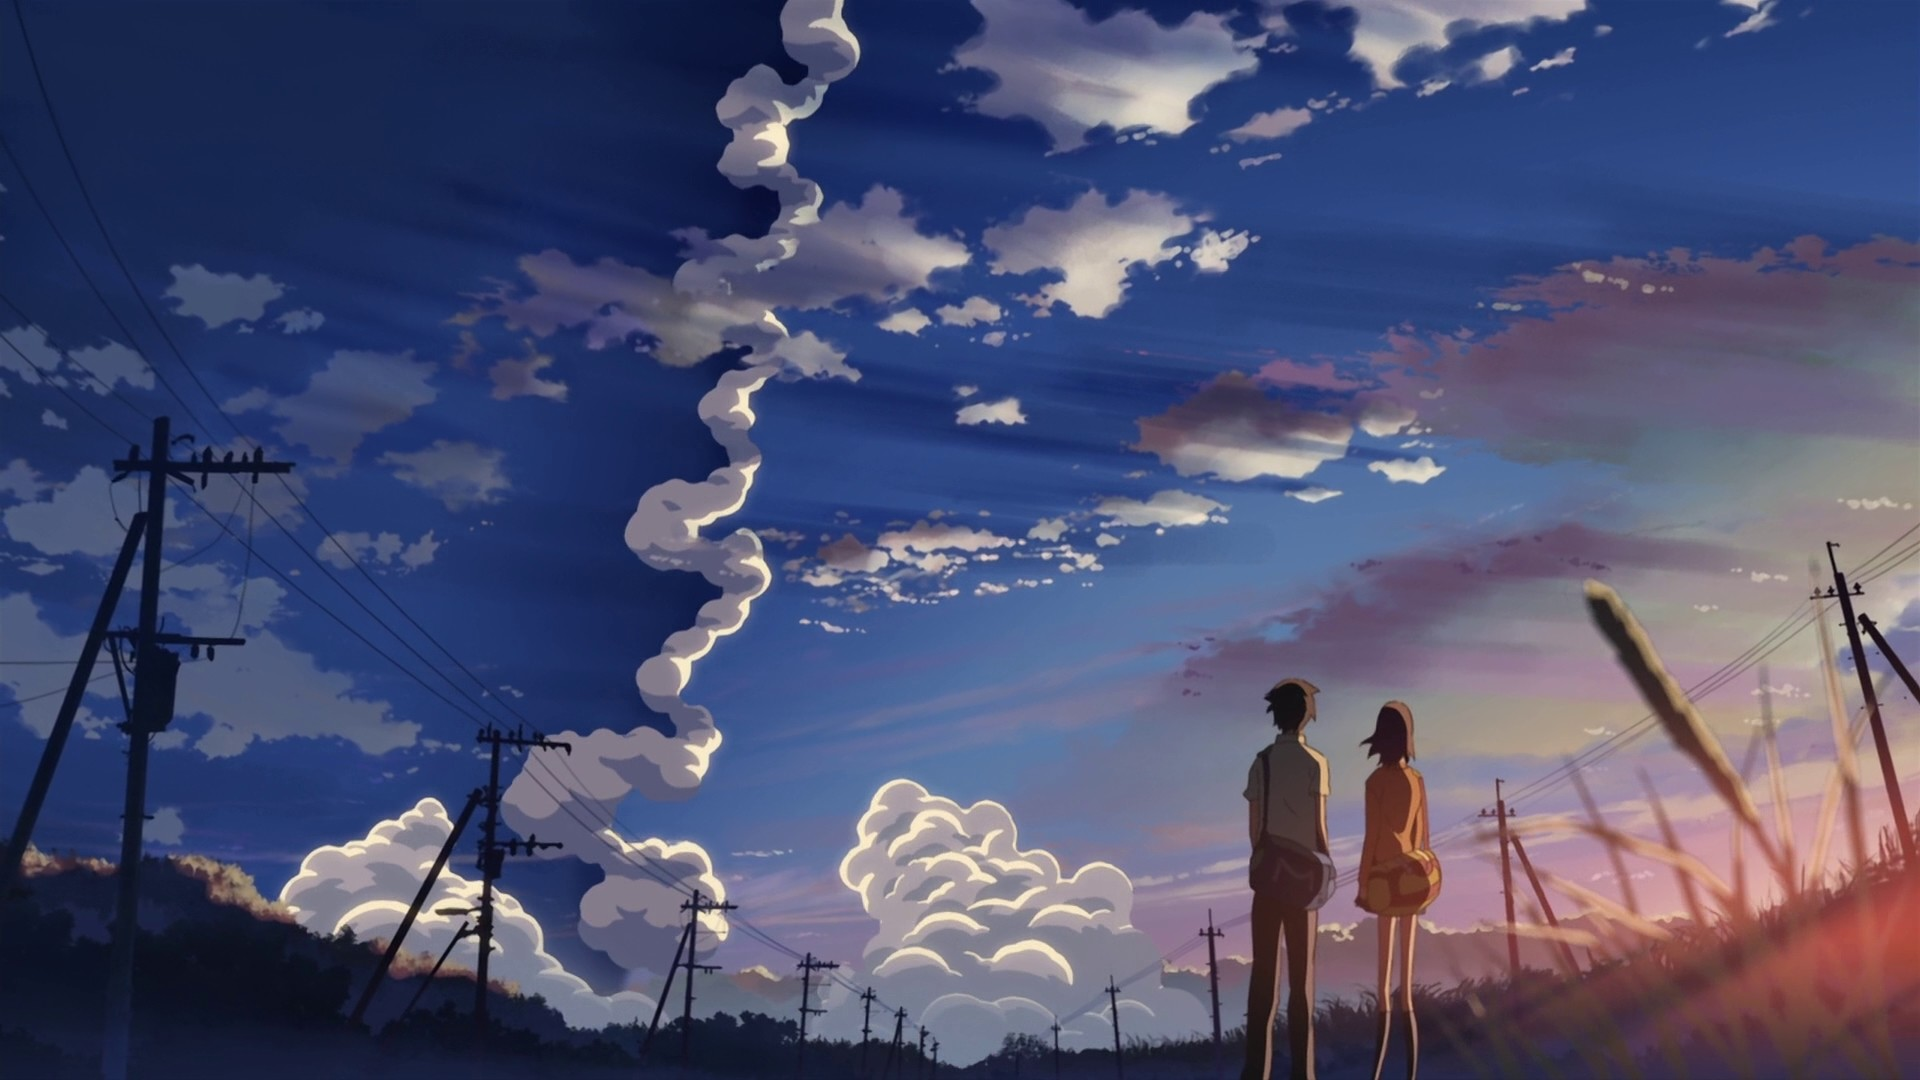 1920x1080 wallpaper.wiki-Free-5-Centimeters-Per-Second-Wallpapers-